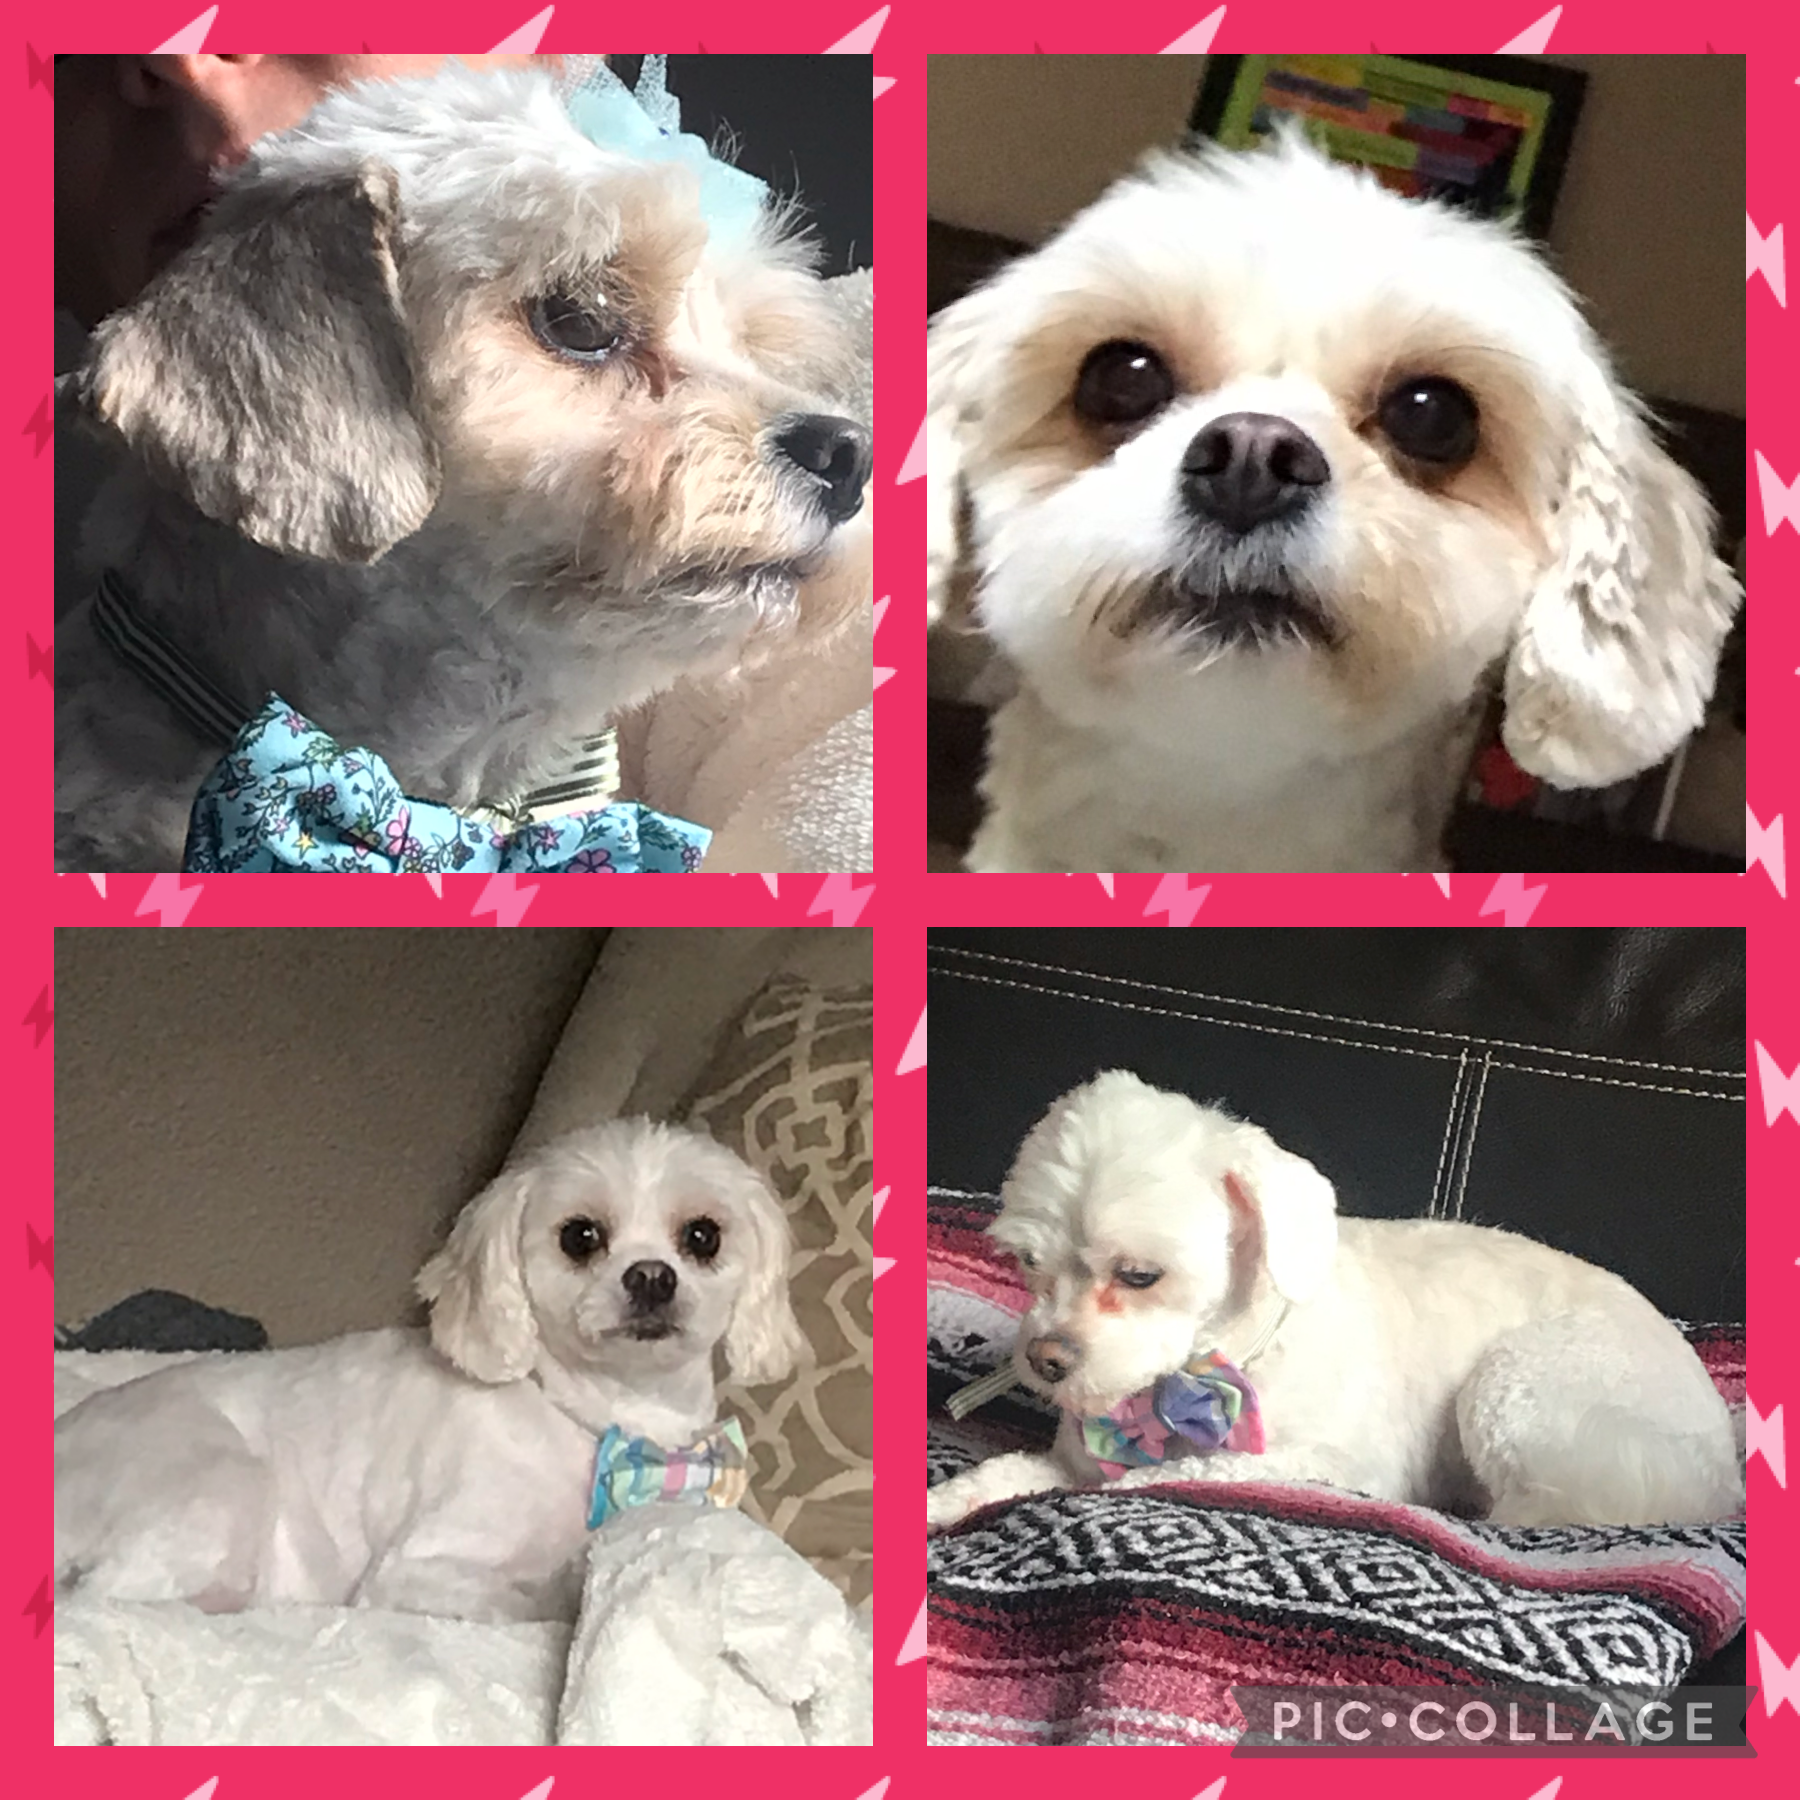 This is Callie, (upper left) Teena (upper right), Julia (lower left), and Holly (lower right)